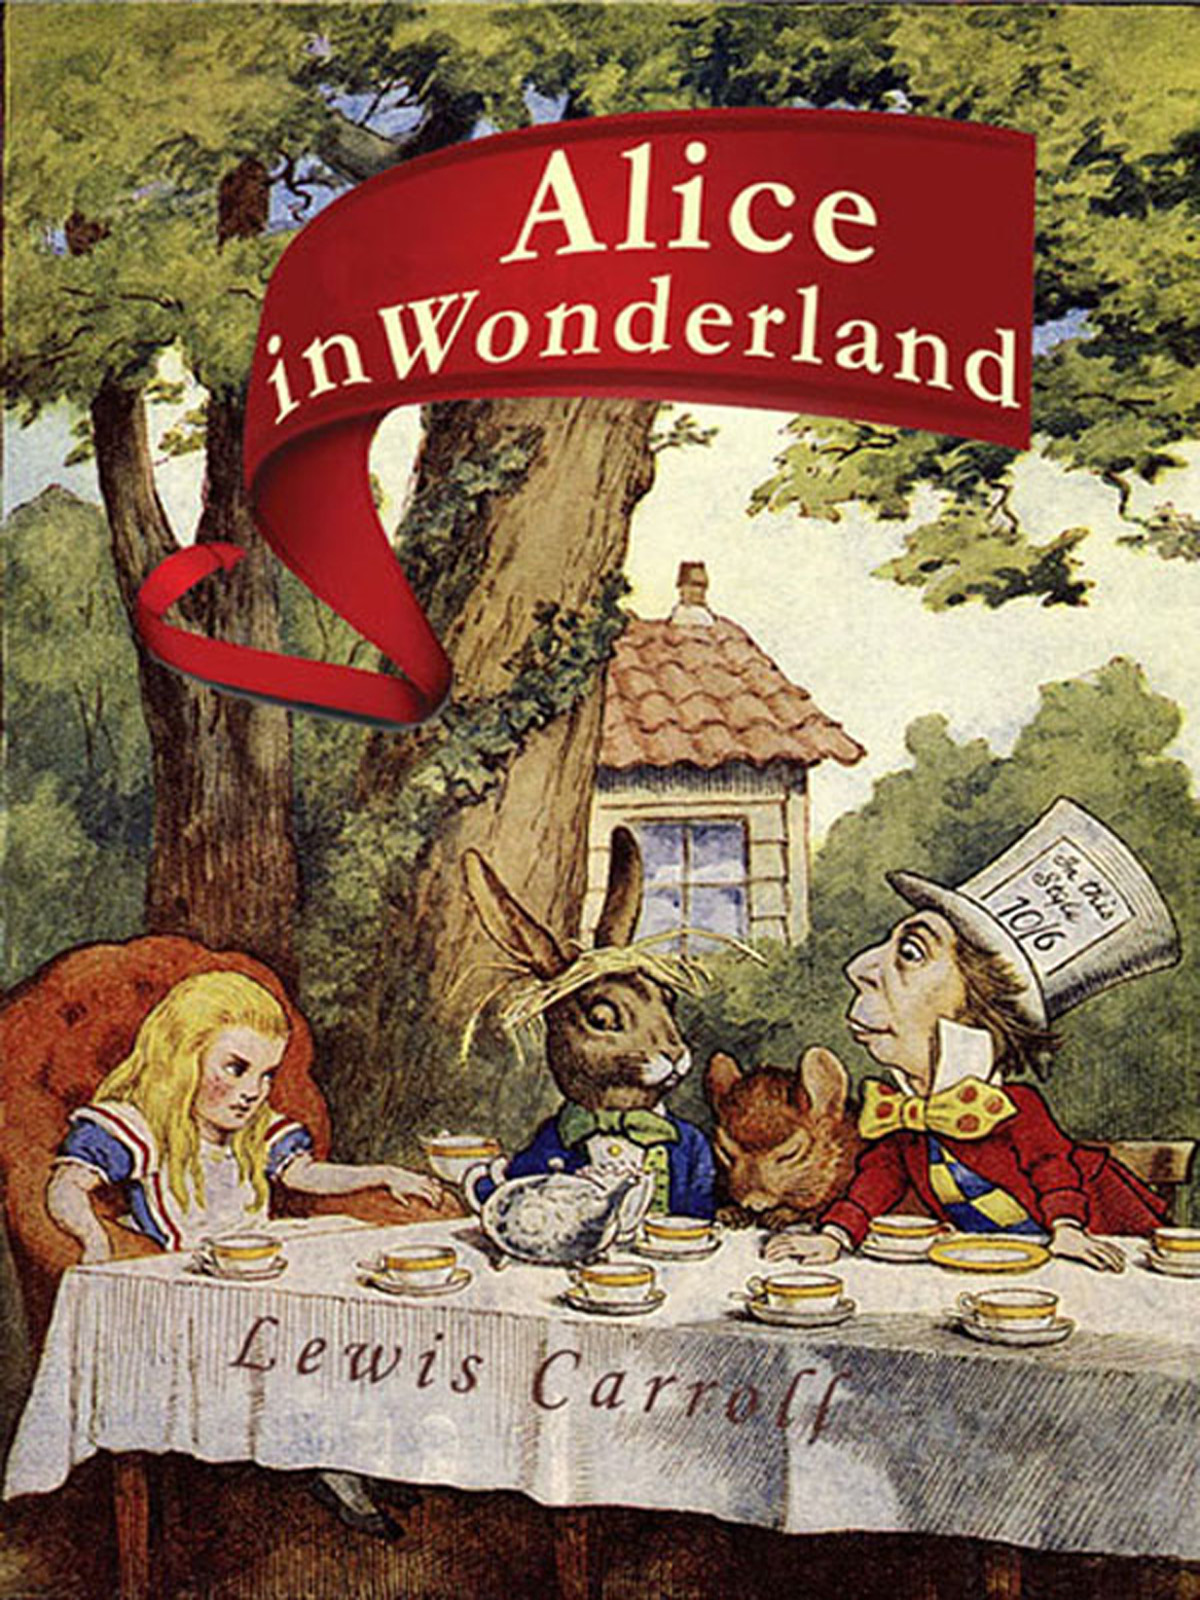 alice in wonderland reading log essay Alice in wonderland essays are academic essays for citation these papers were written primarily by students and provide critical analysis of alice in wonderland.